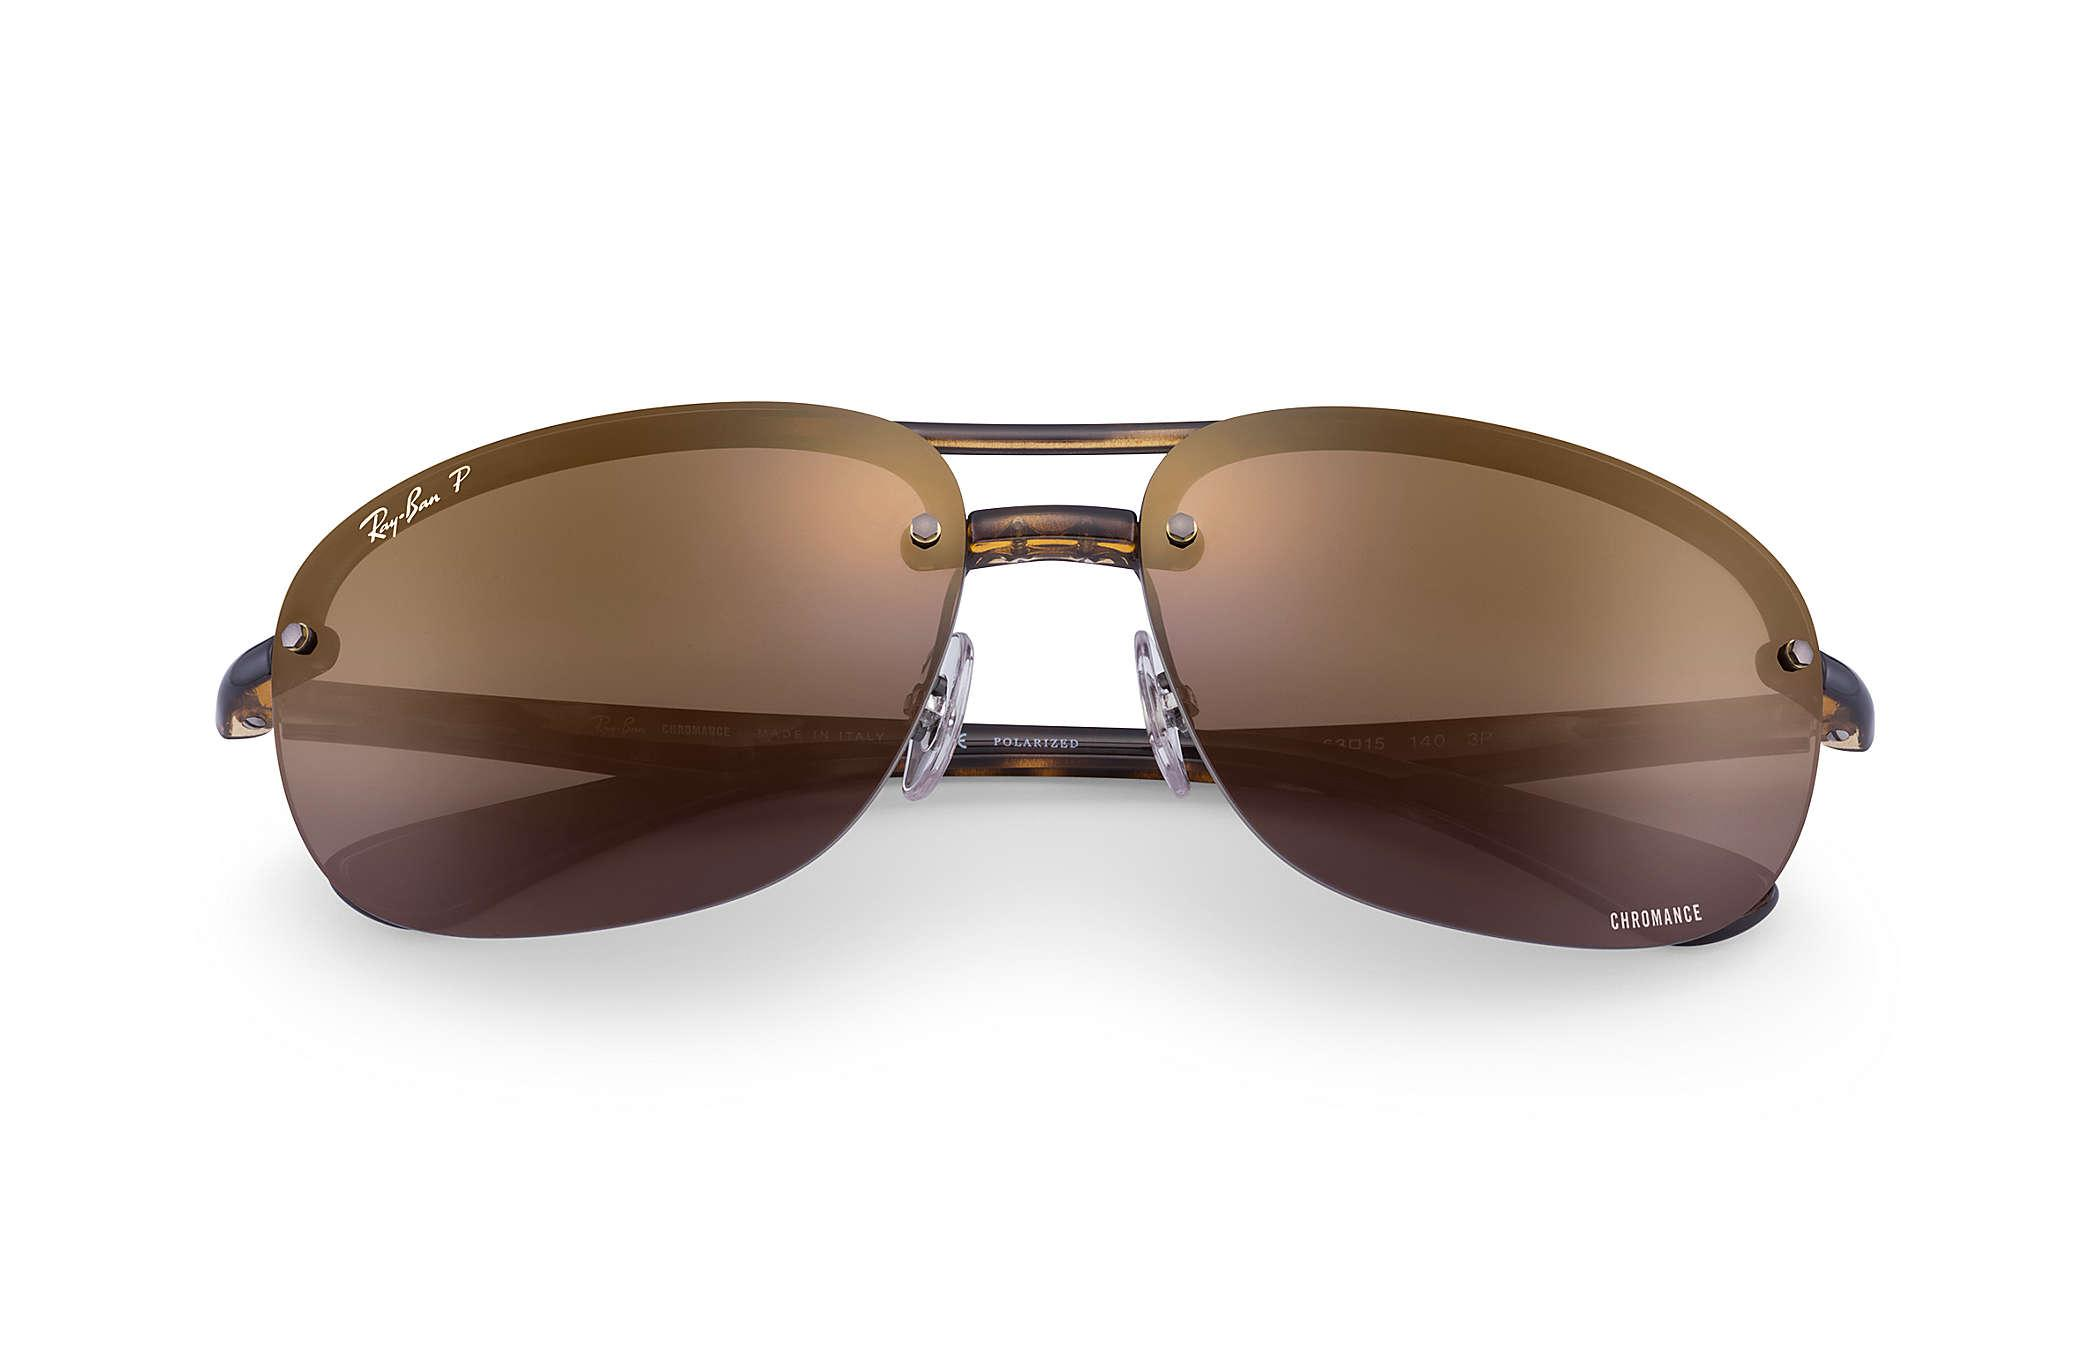 3e640de143 Ray-Ban - Multicolor Rb4275 Chromance for Men - Lyst. View fullscreen